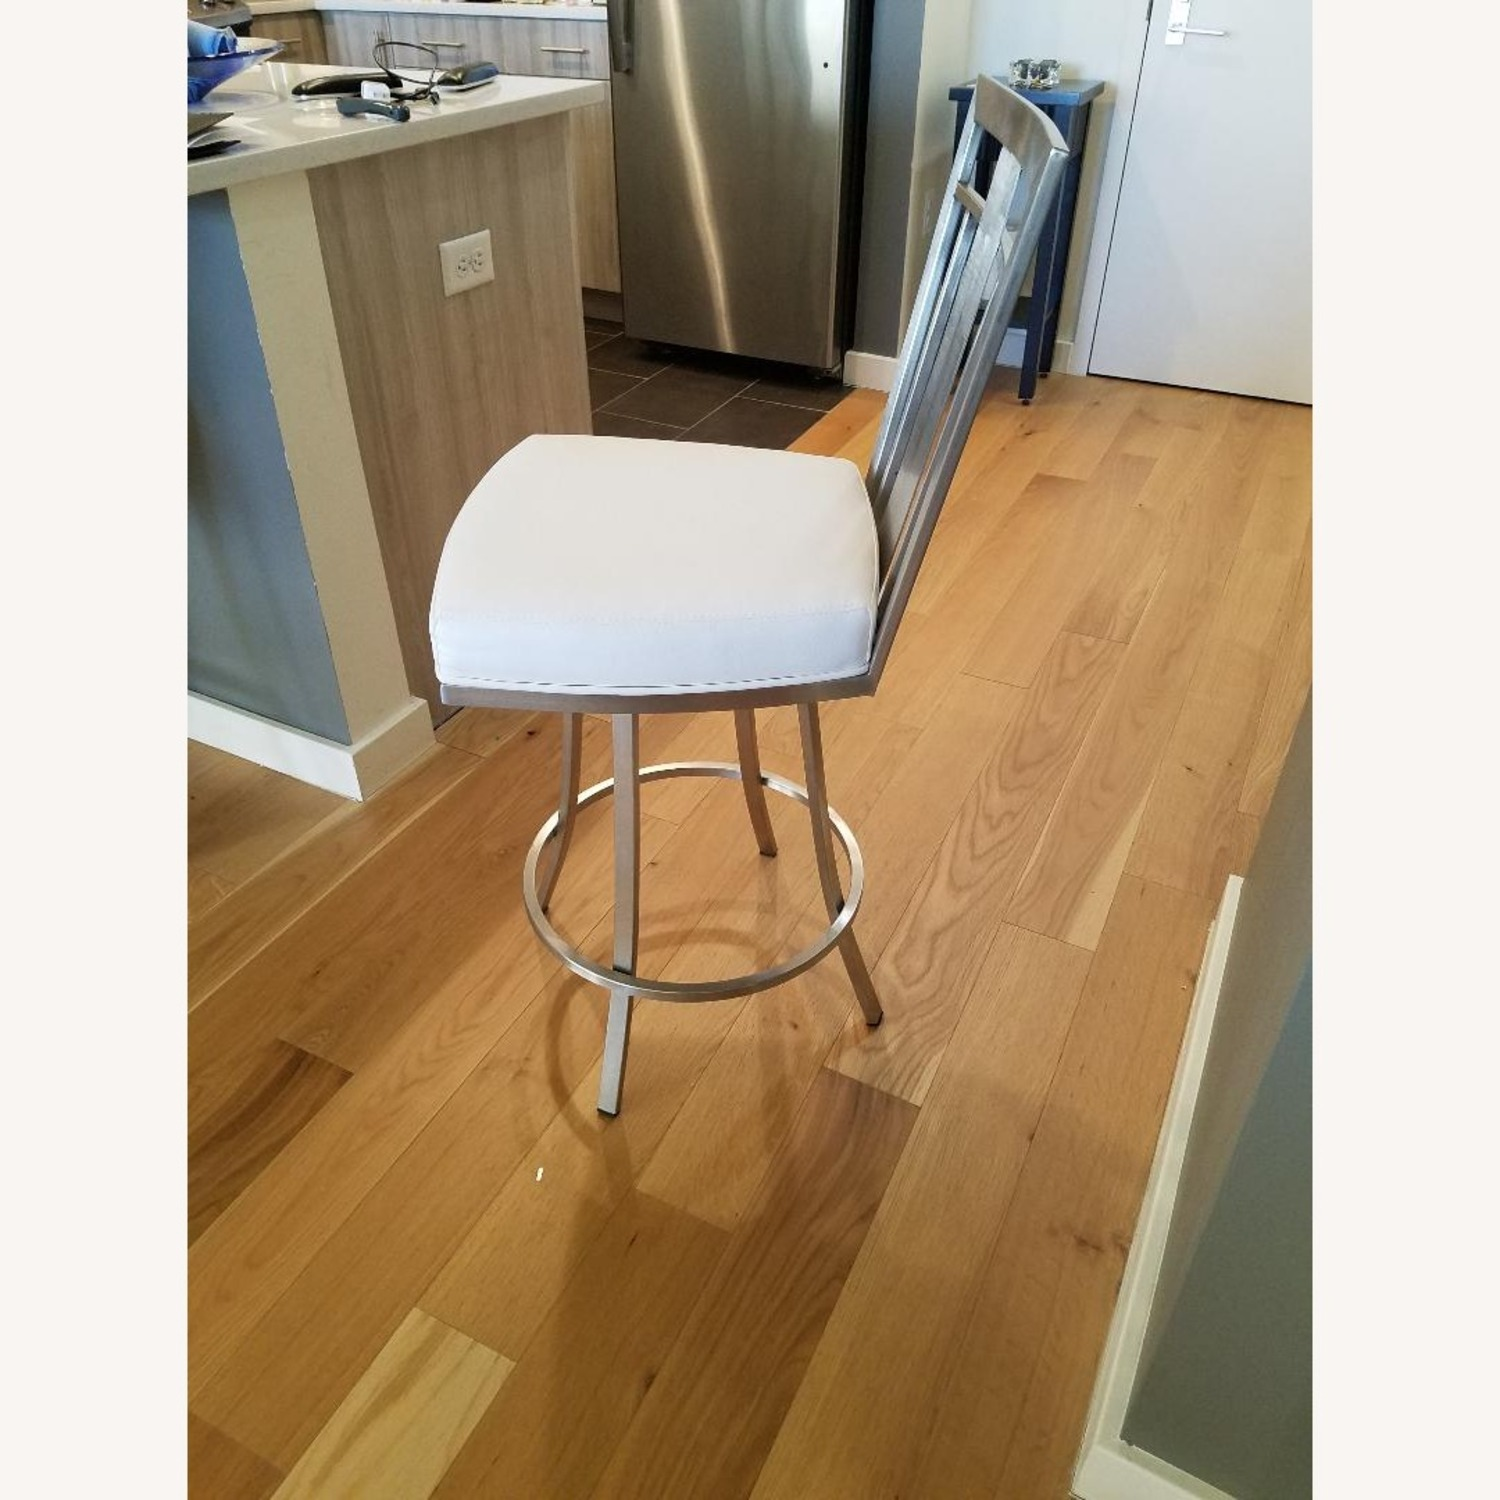 Counter Faux White Leather Bar Stools - image-1